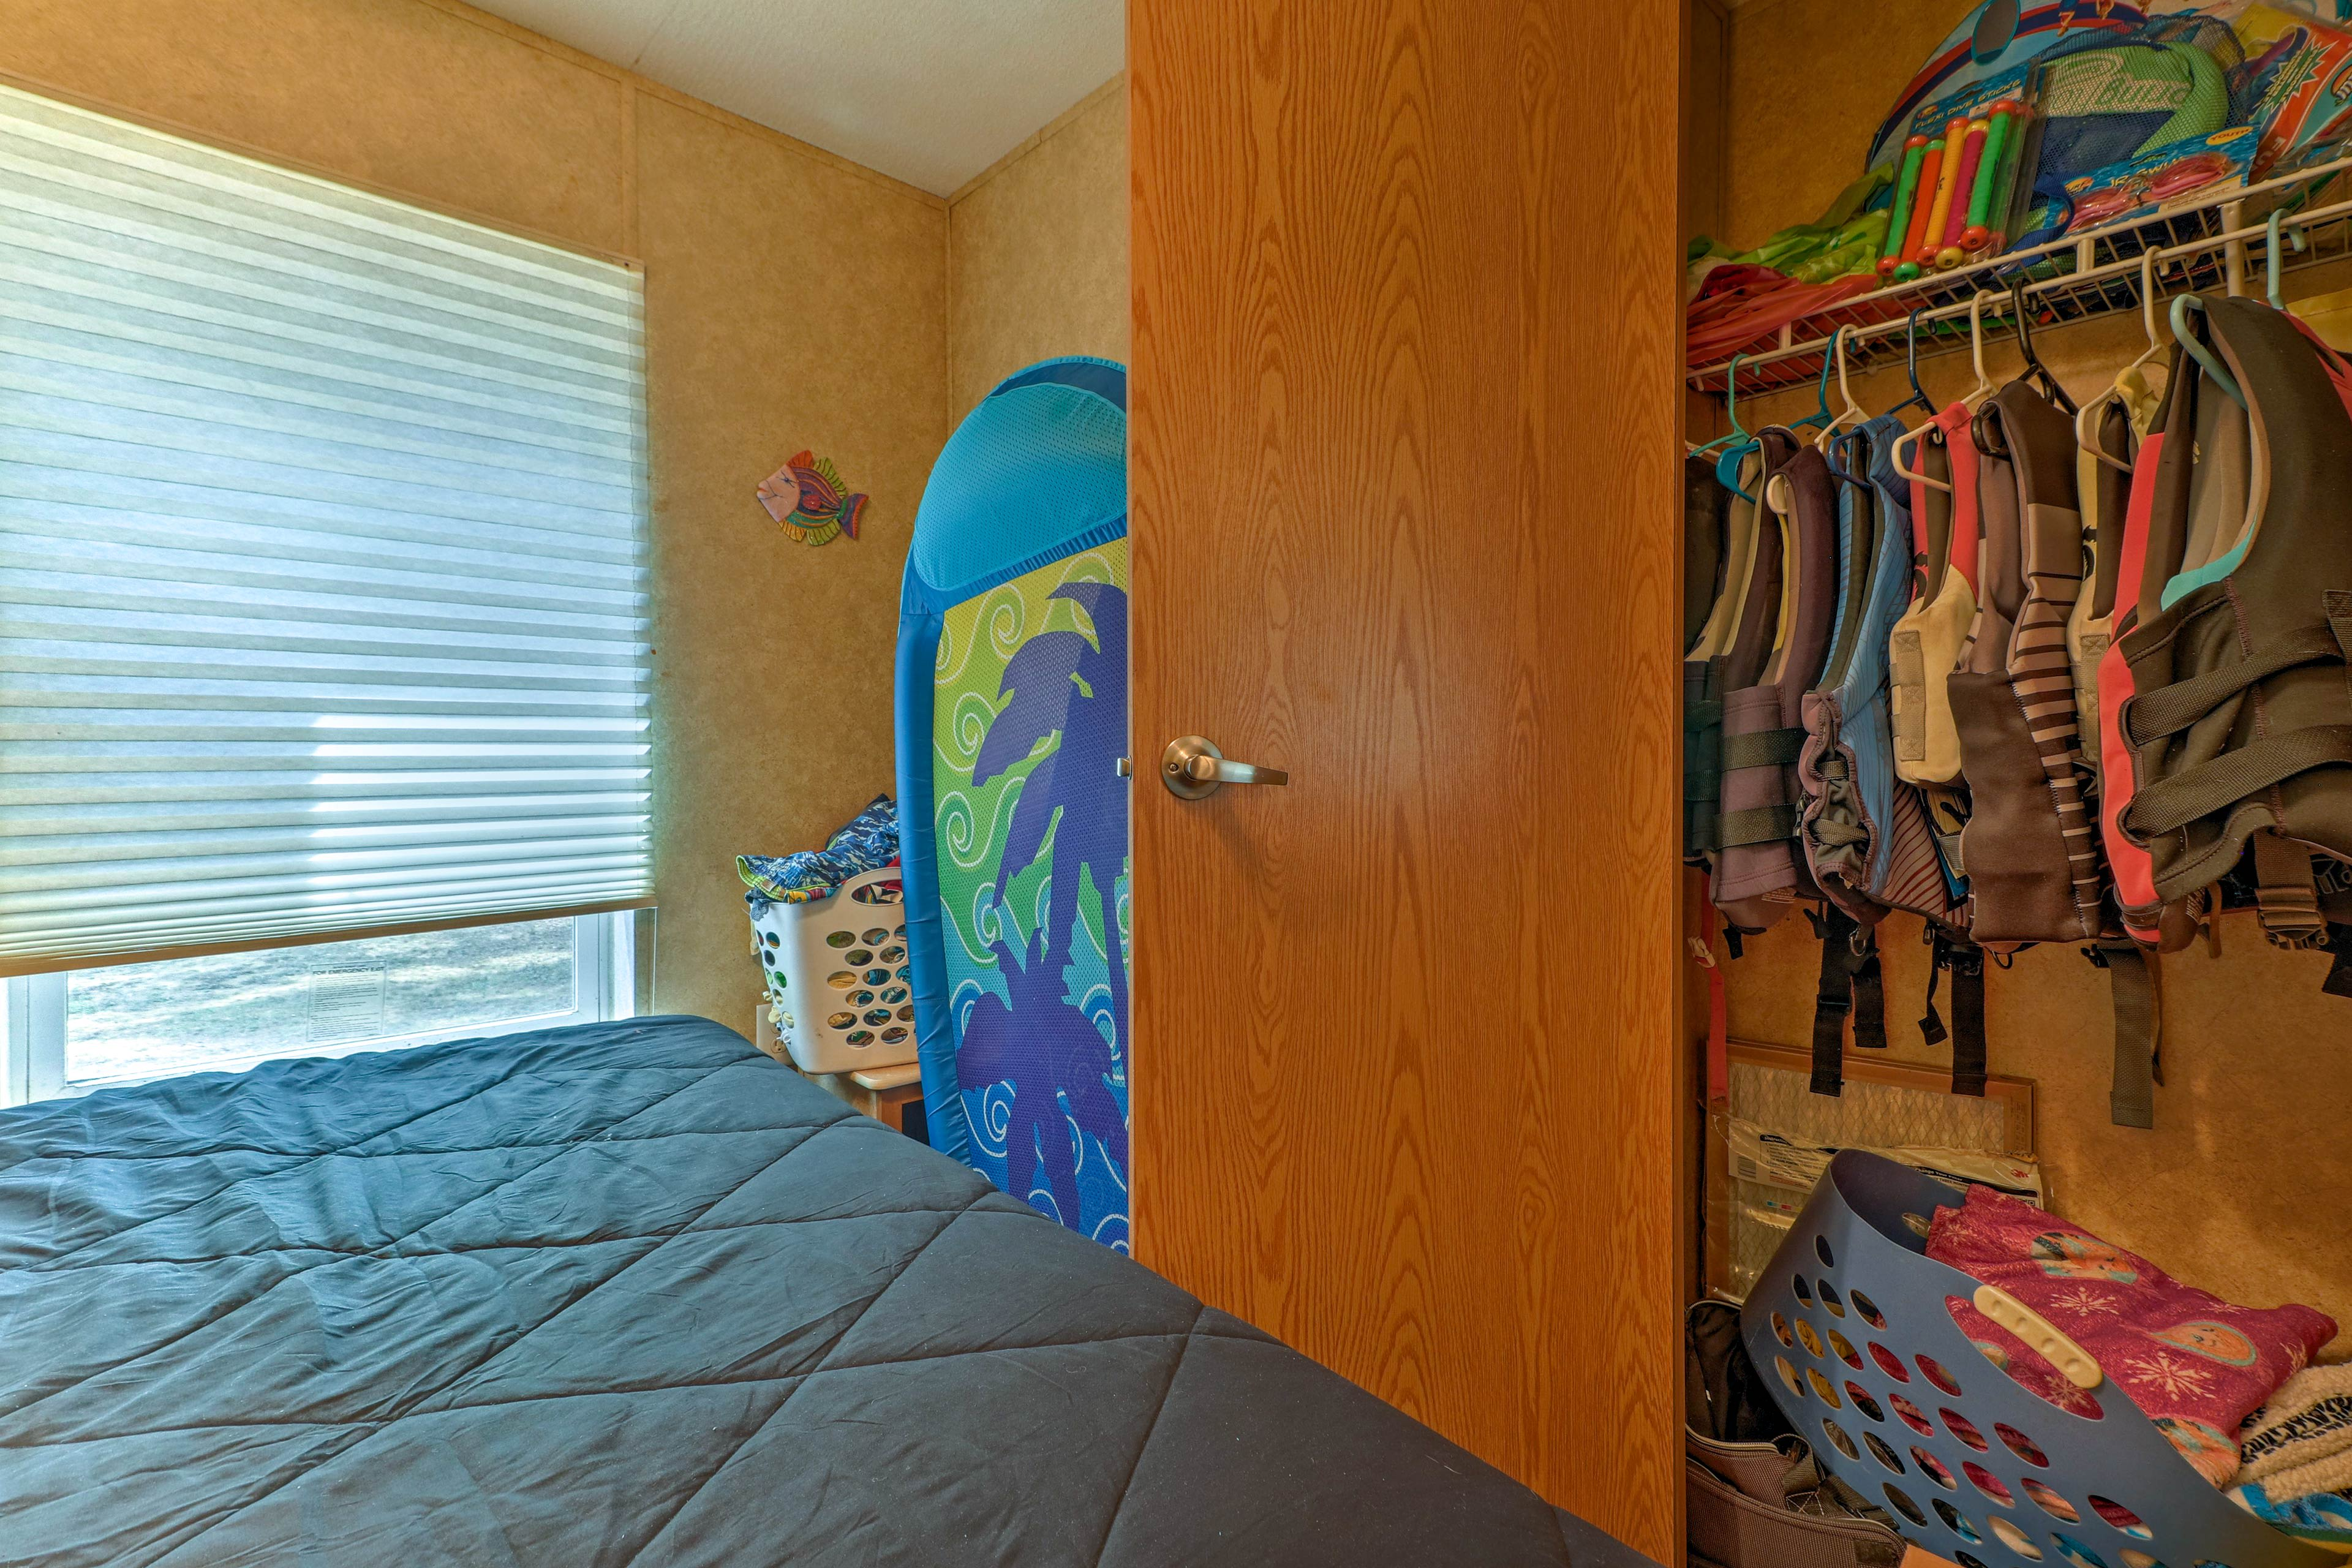 Open up the closet to reveal all of the lake equipment you'll need!